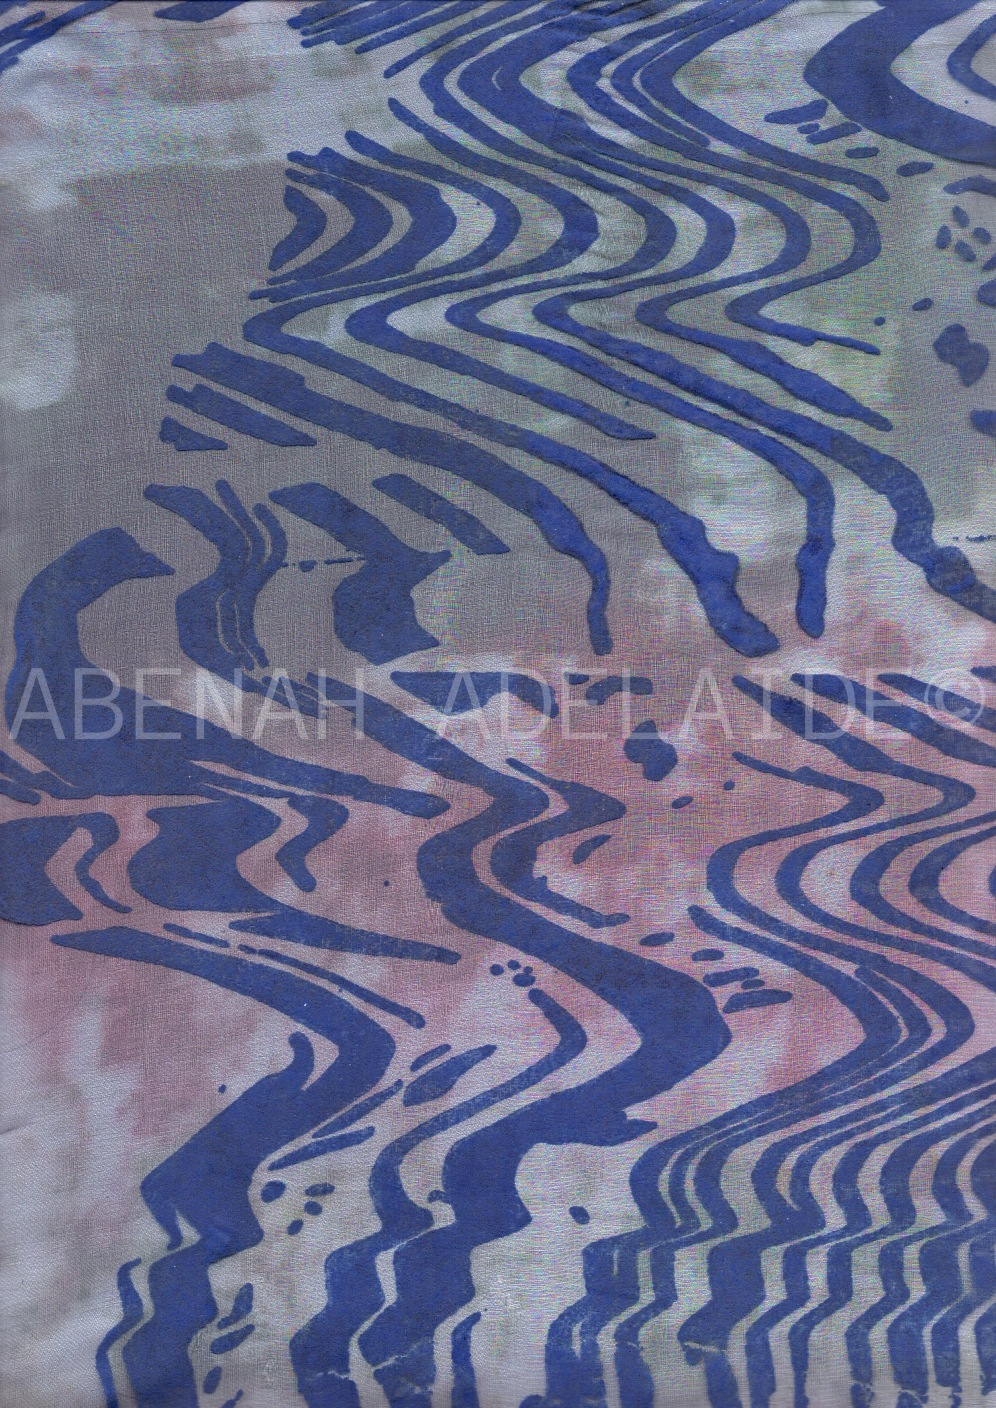 Water Flow by Abenah Adelaide ©